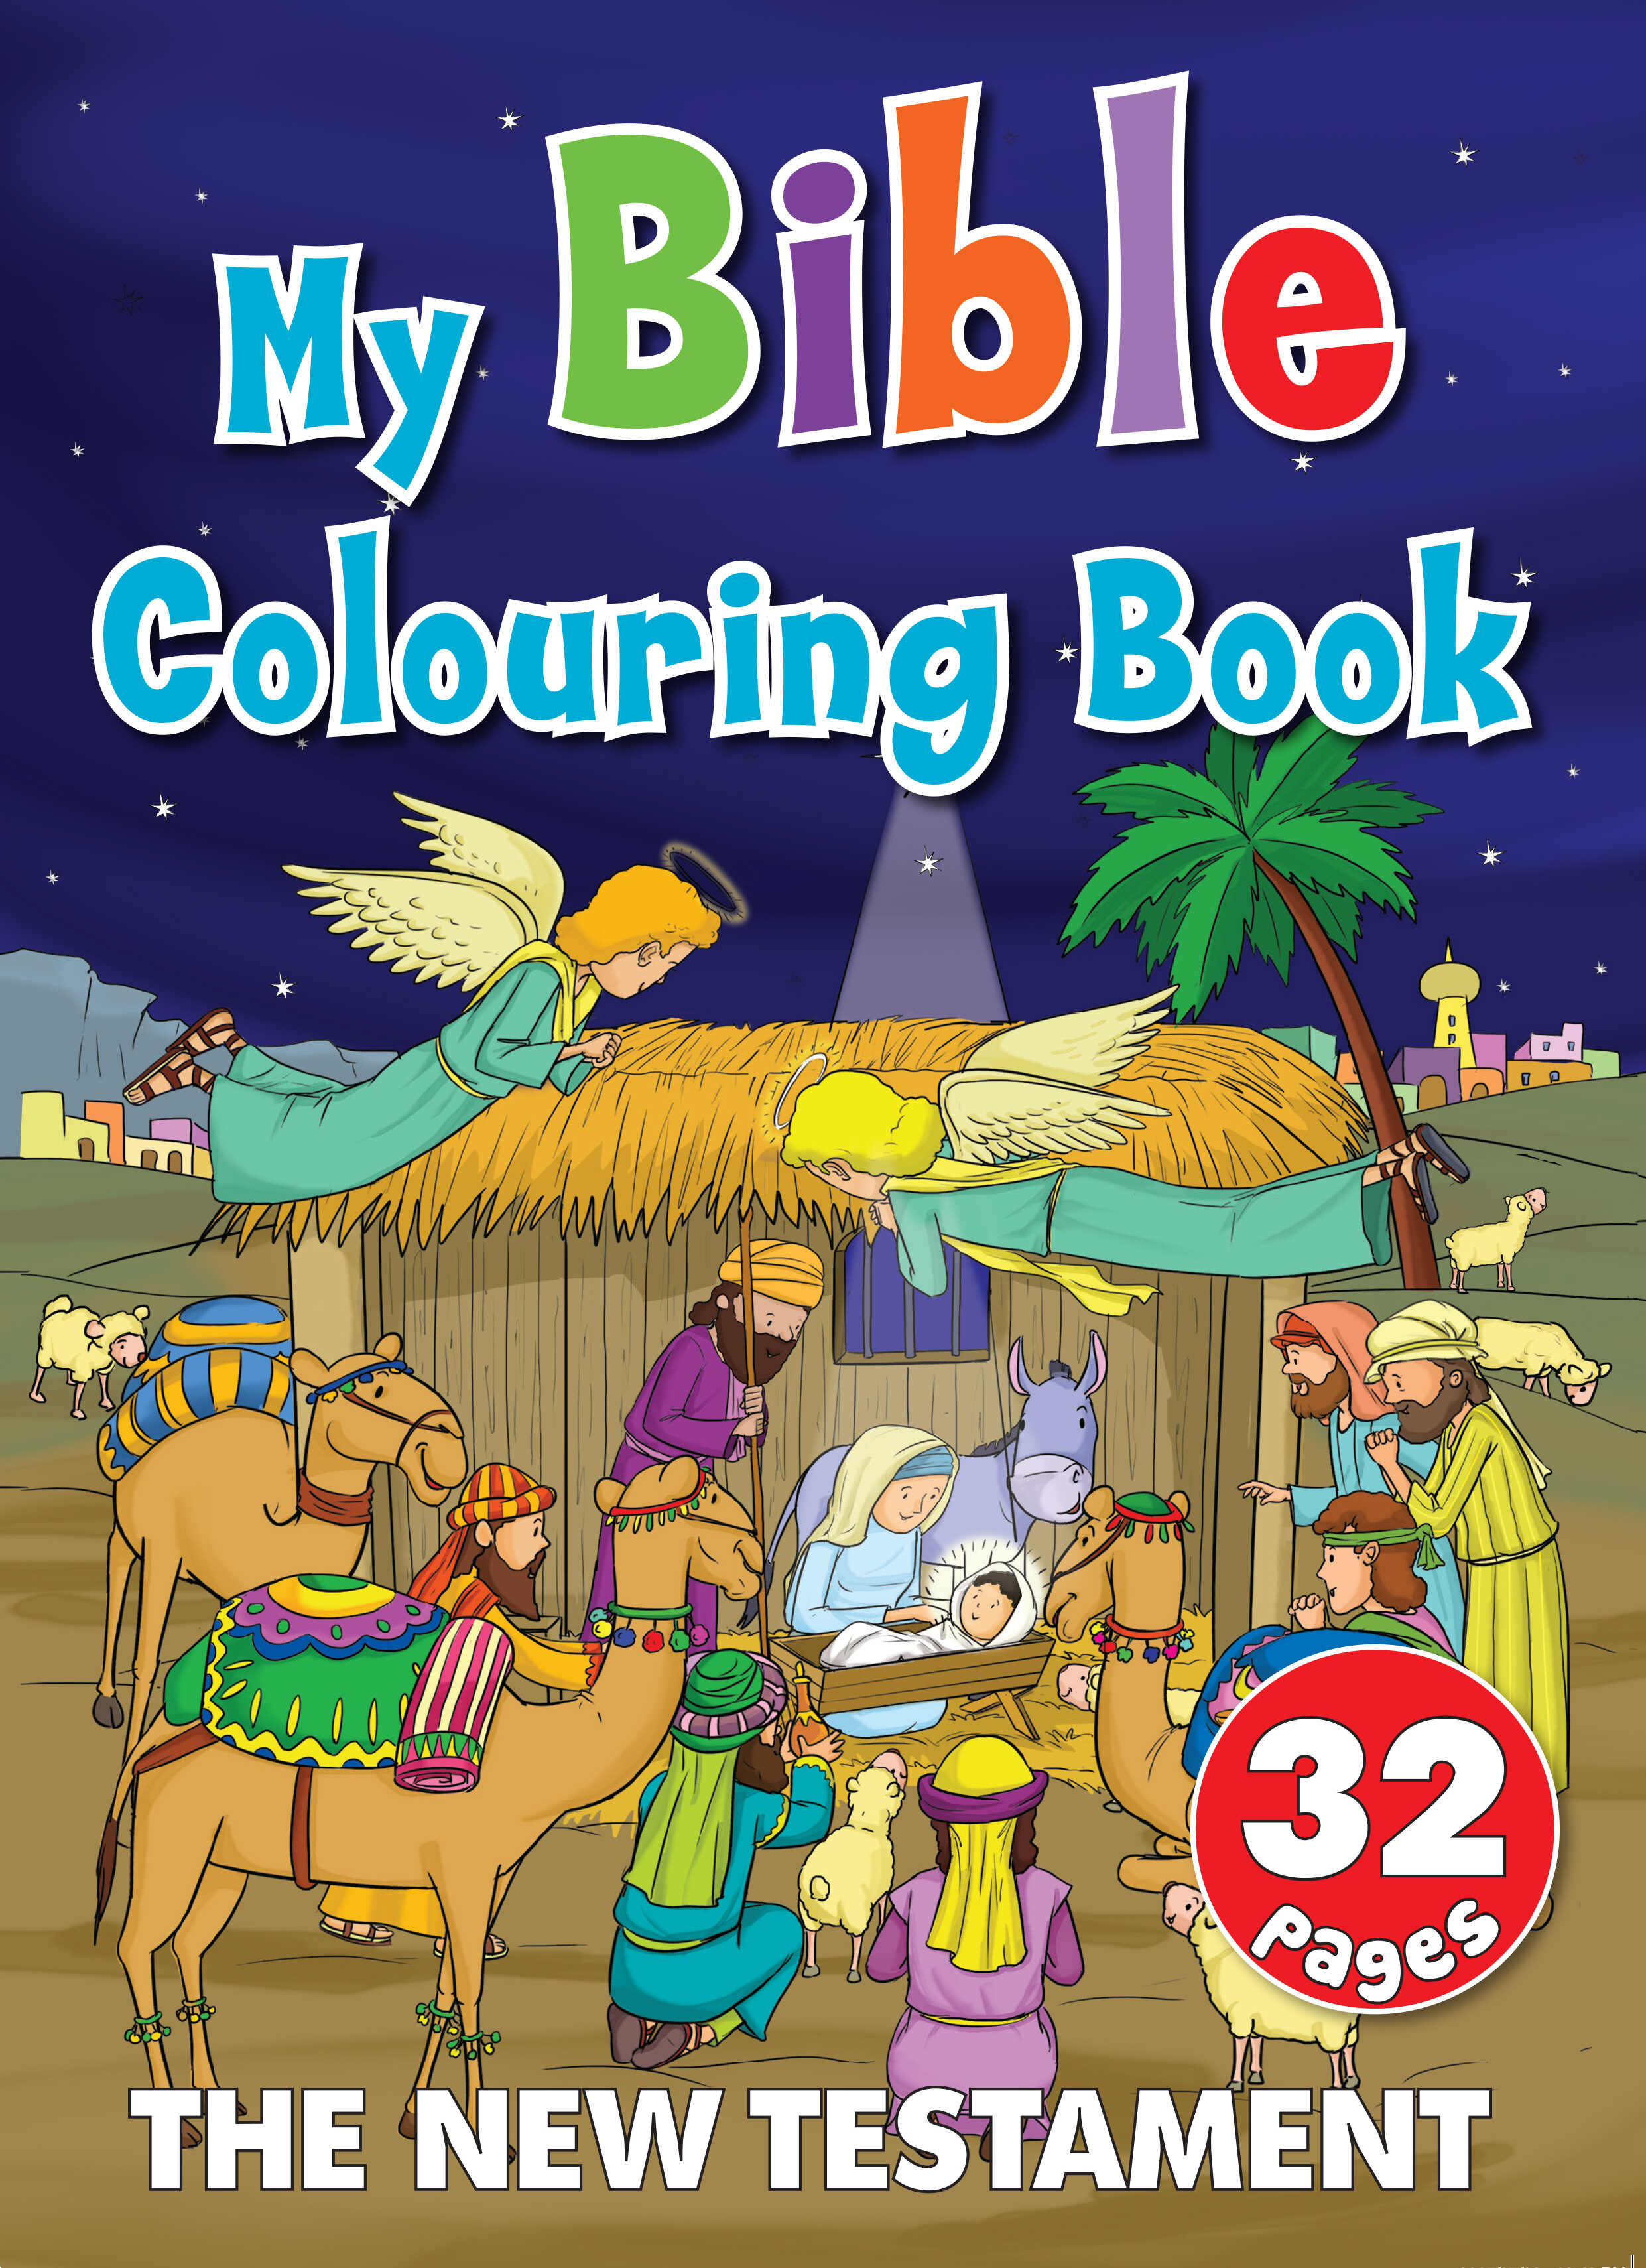 My Bible Colouring Book The New Testament 32 Page